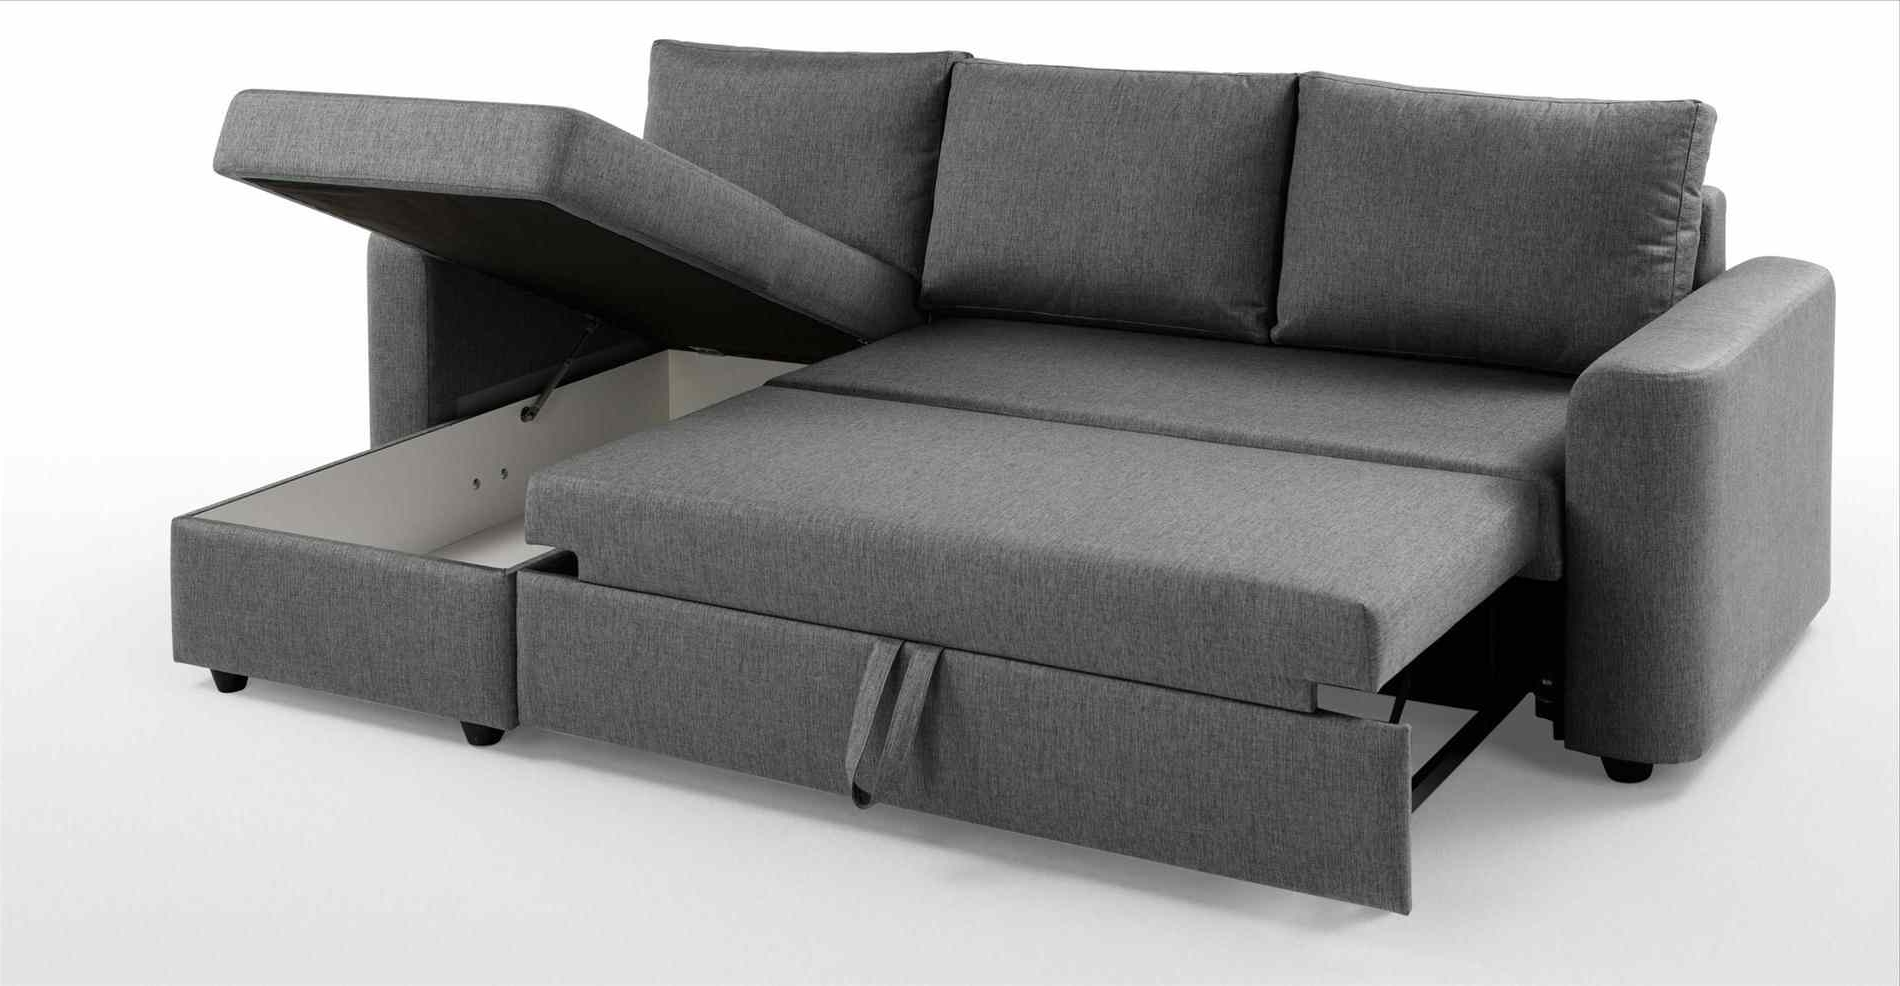 Philippines Sectional Sofas For Fashionable Sofa : Friheten Storage Sofa Bed Corner With Skiftebo Dark Gray (View 13 of 20)